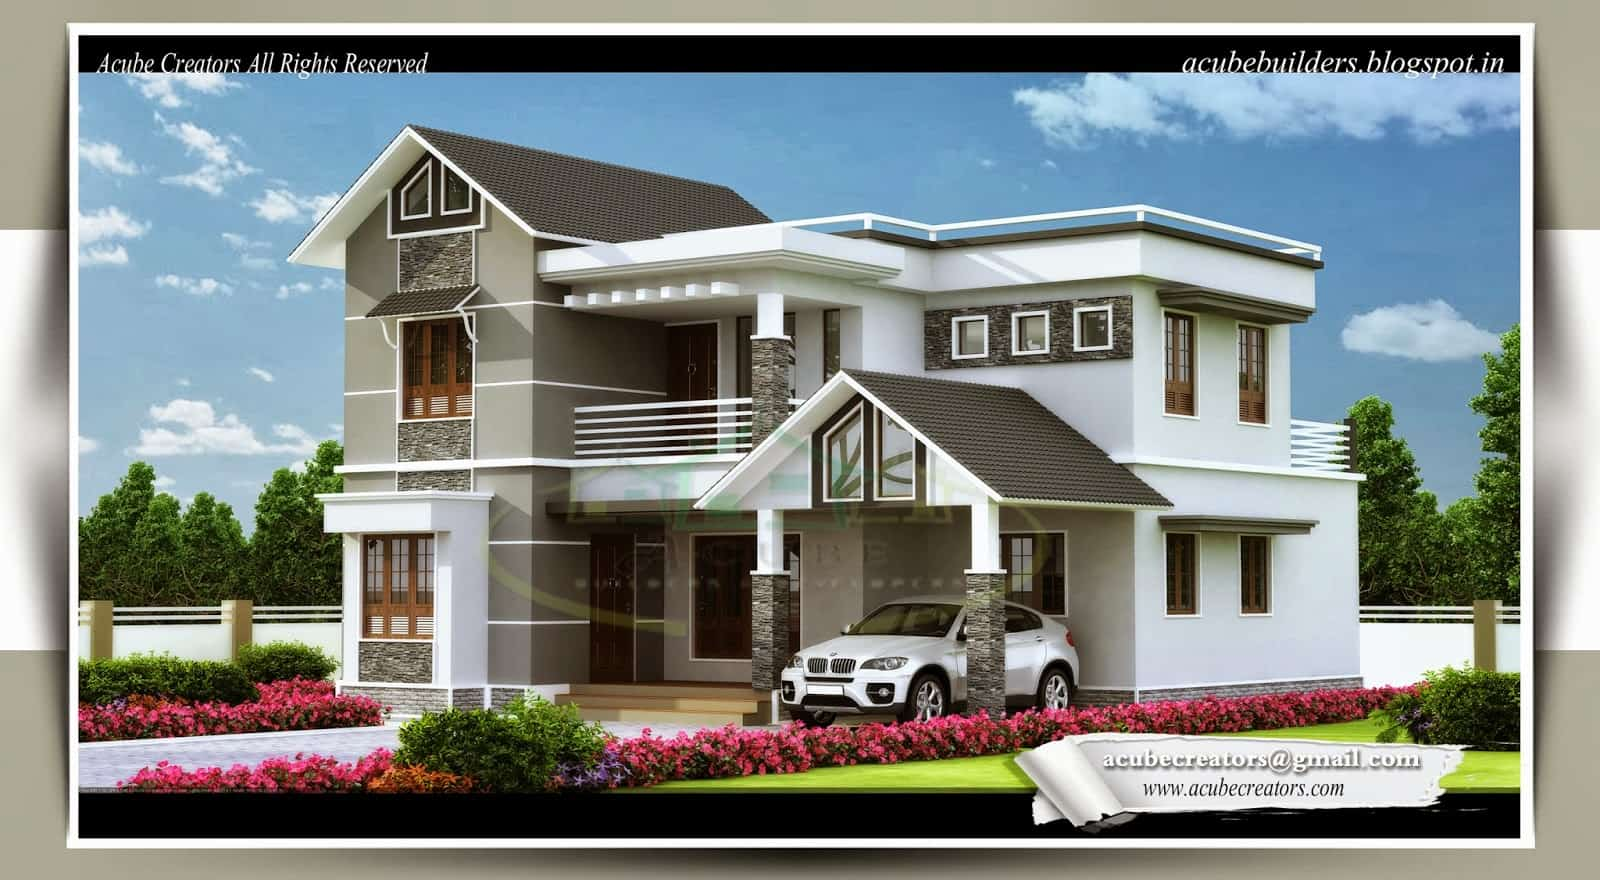 Kerala home design photos Free indian home plans and designs